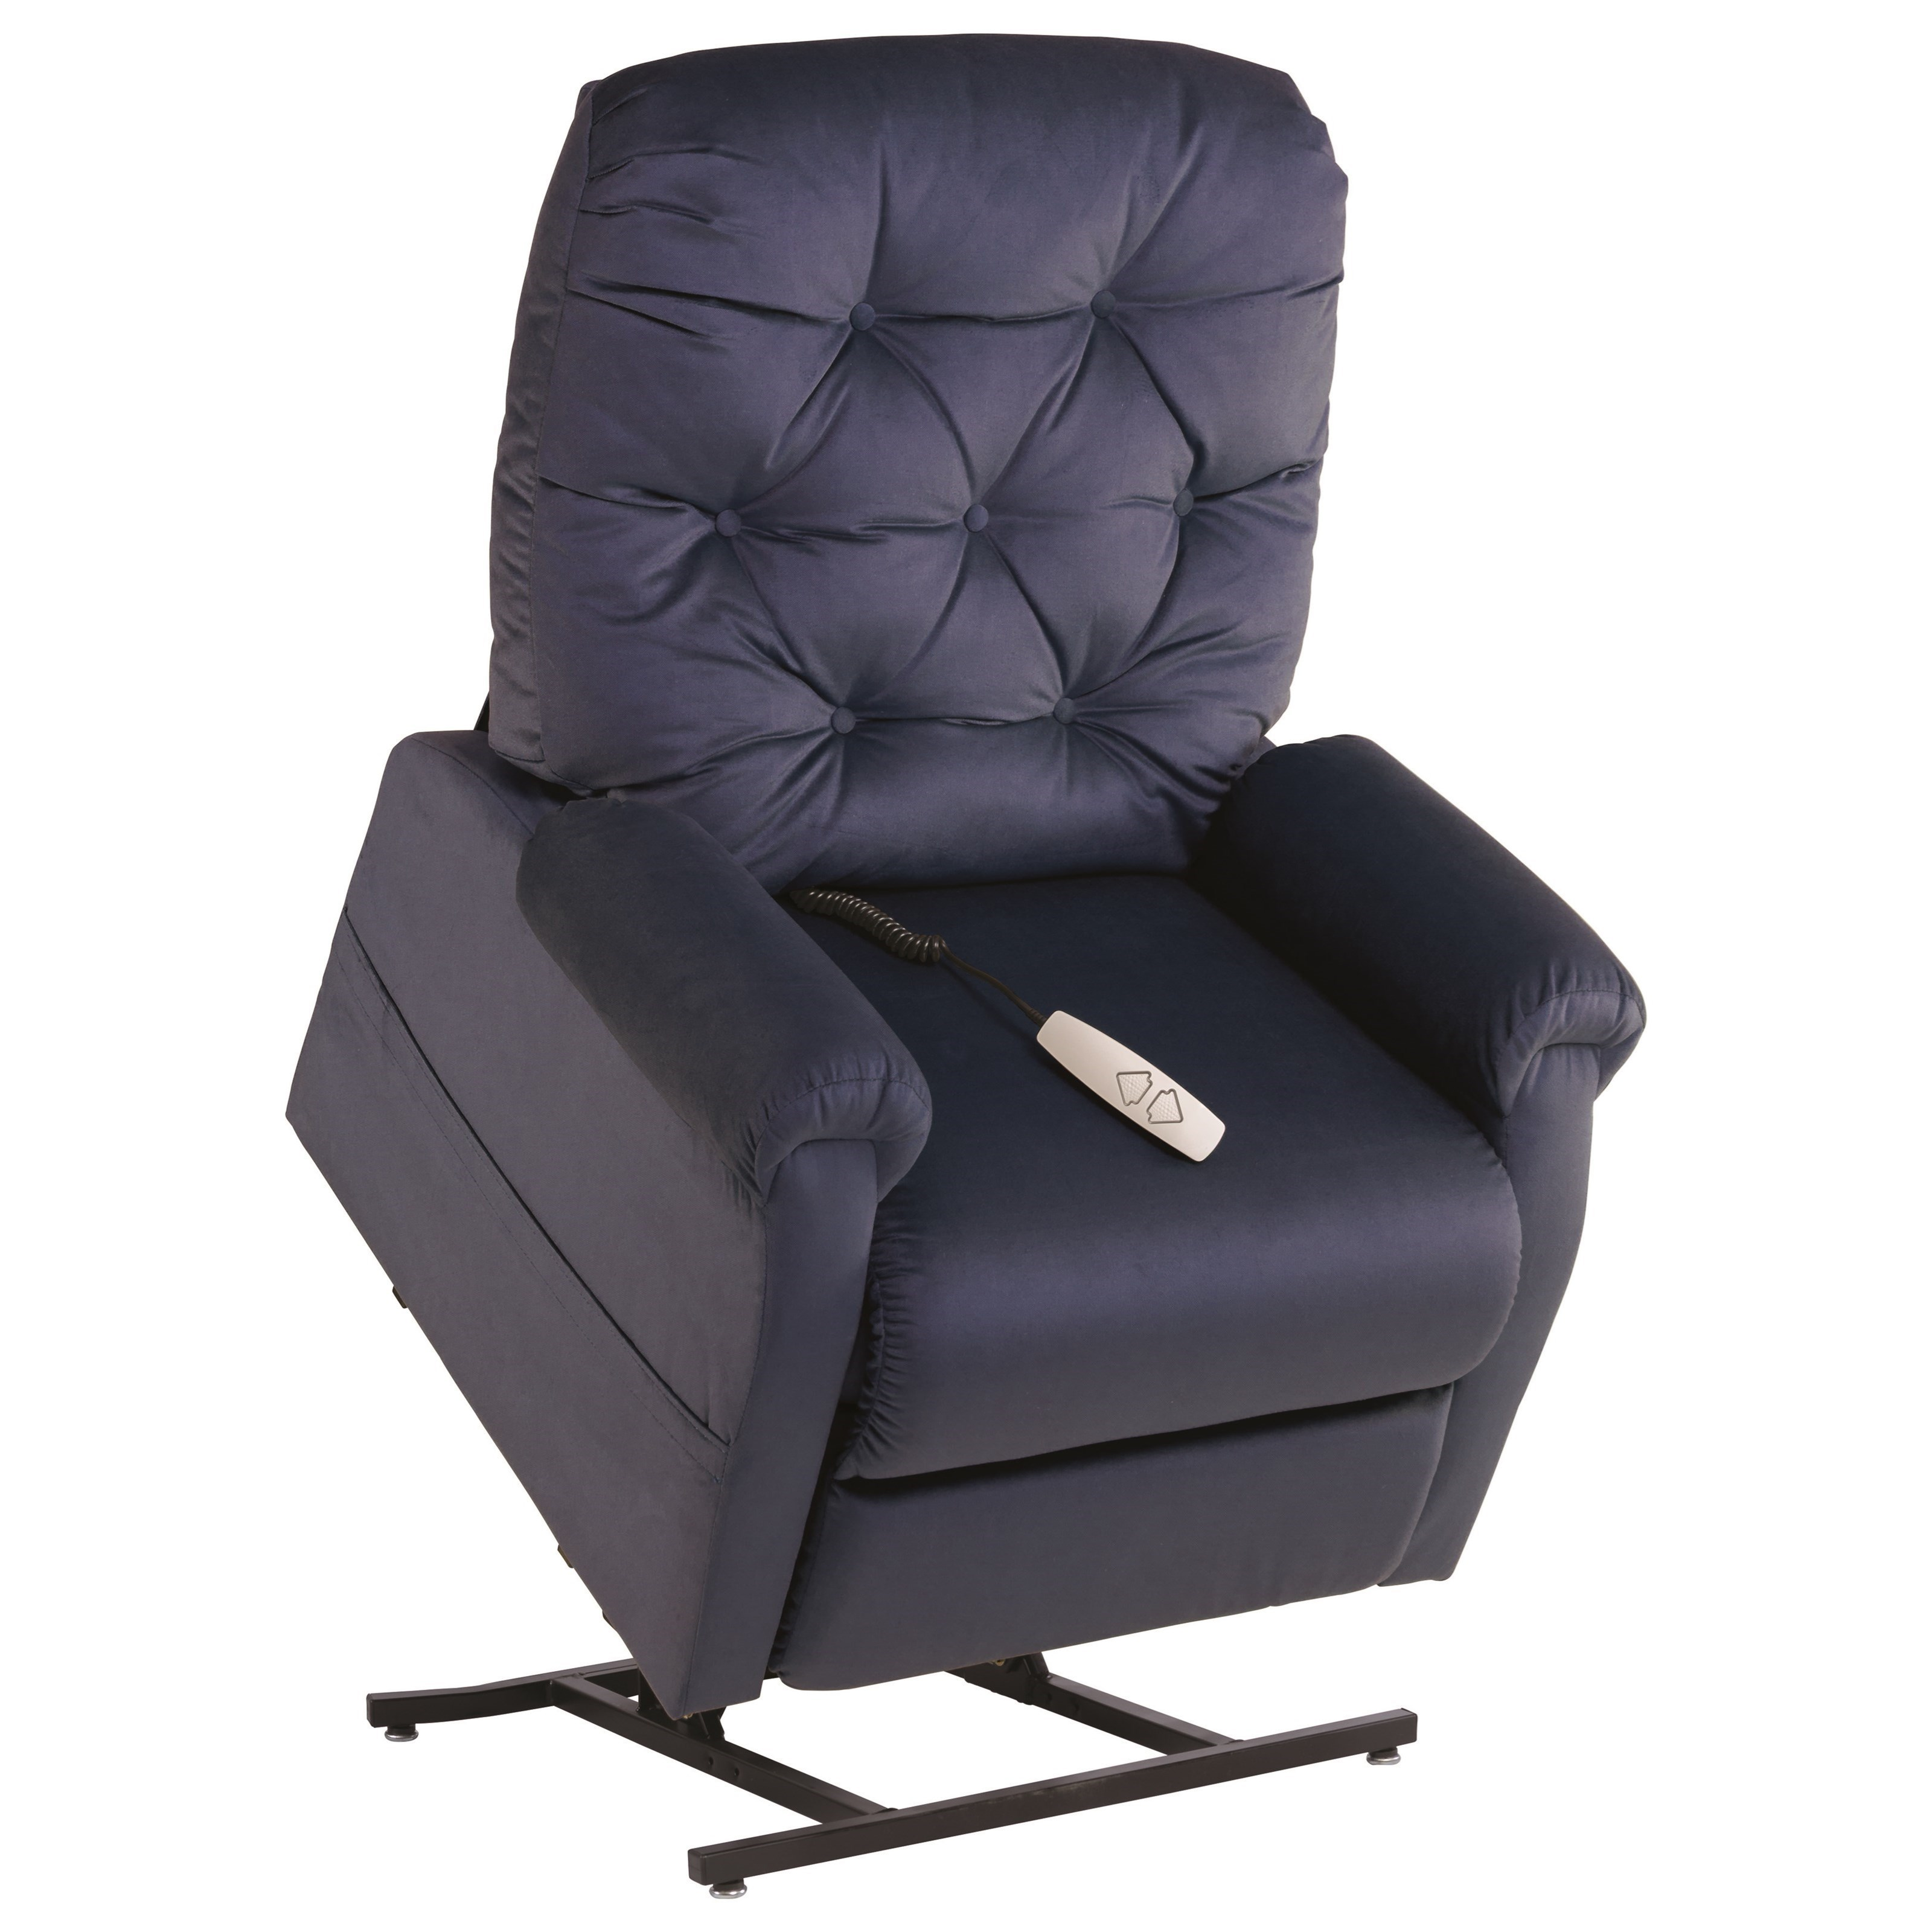 Ultimate Power Recliner Lift Chairs 3-Position Reclining Chaise Lounger - VanDrie Home Furnishings - Lift Chairs  sc 1 st  VanDrie Home Furnishings & Ultimate Power Recliner Lift Chairs 3-Position Reclining Chaise ... islam-shia.org